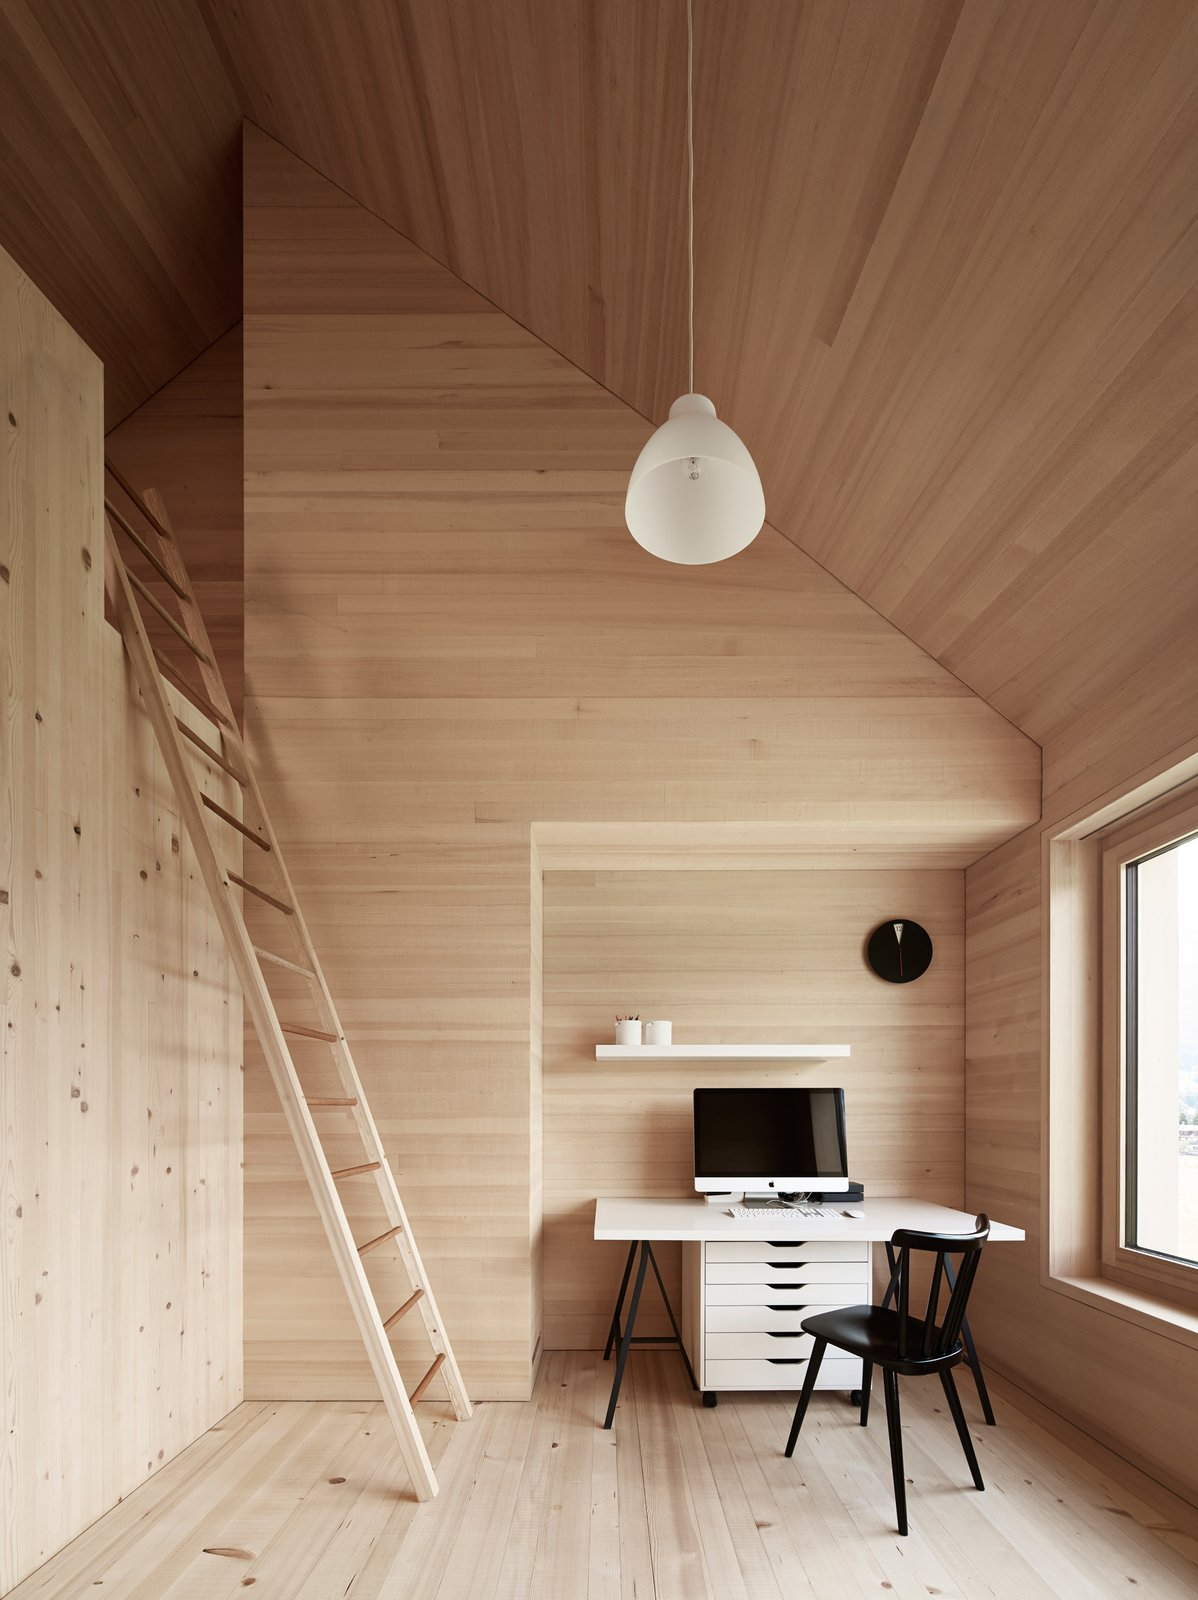 Spruce wood also lines the floor, walls, and ceiling in the bedrooms. The residents must climb a ladder to access the loft above.  Clever Loft Spaces for Small Places by Diana Budds from House For Julia Björn